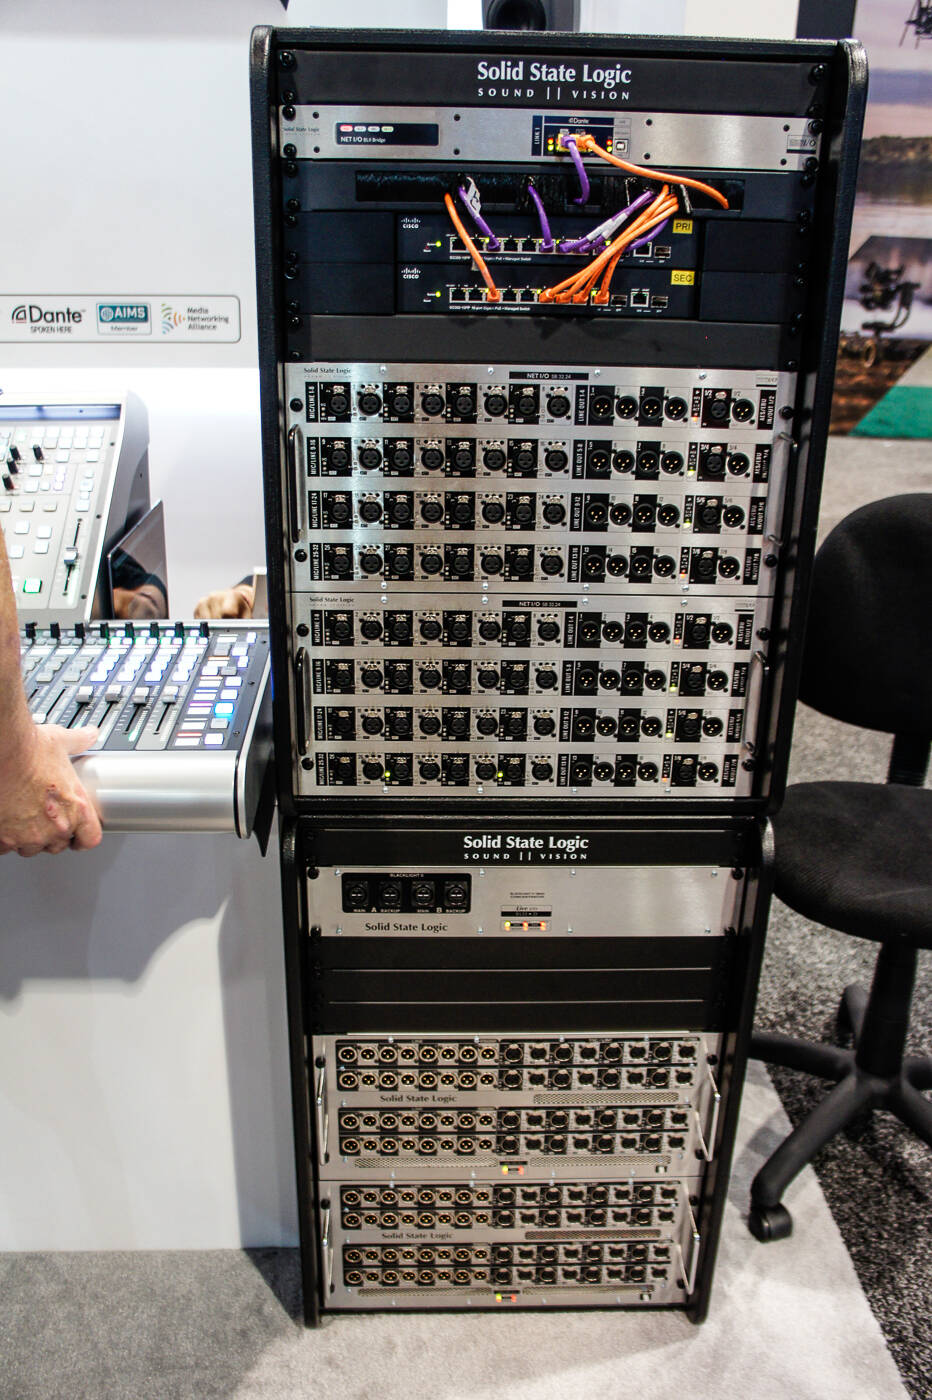 nab2017 Rock oN Solid State Logic